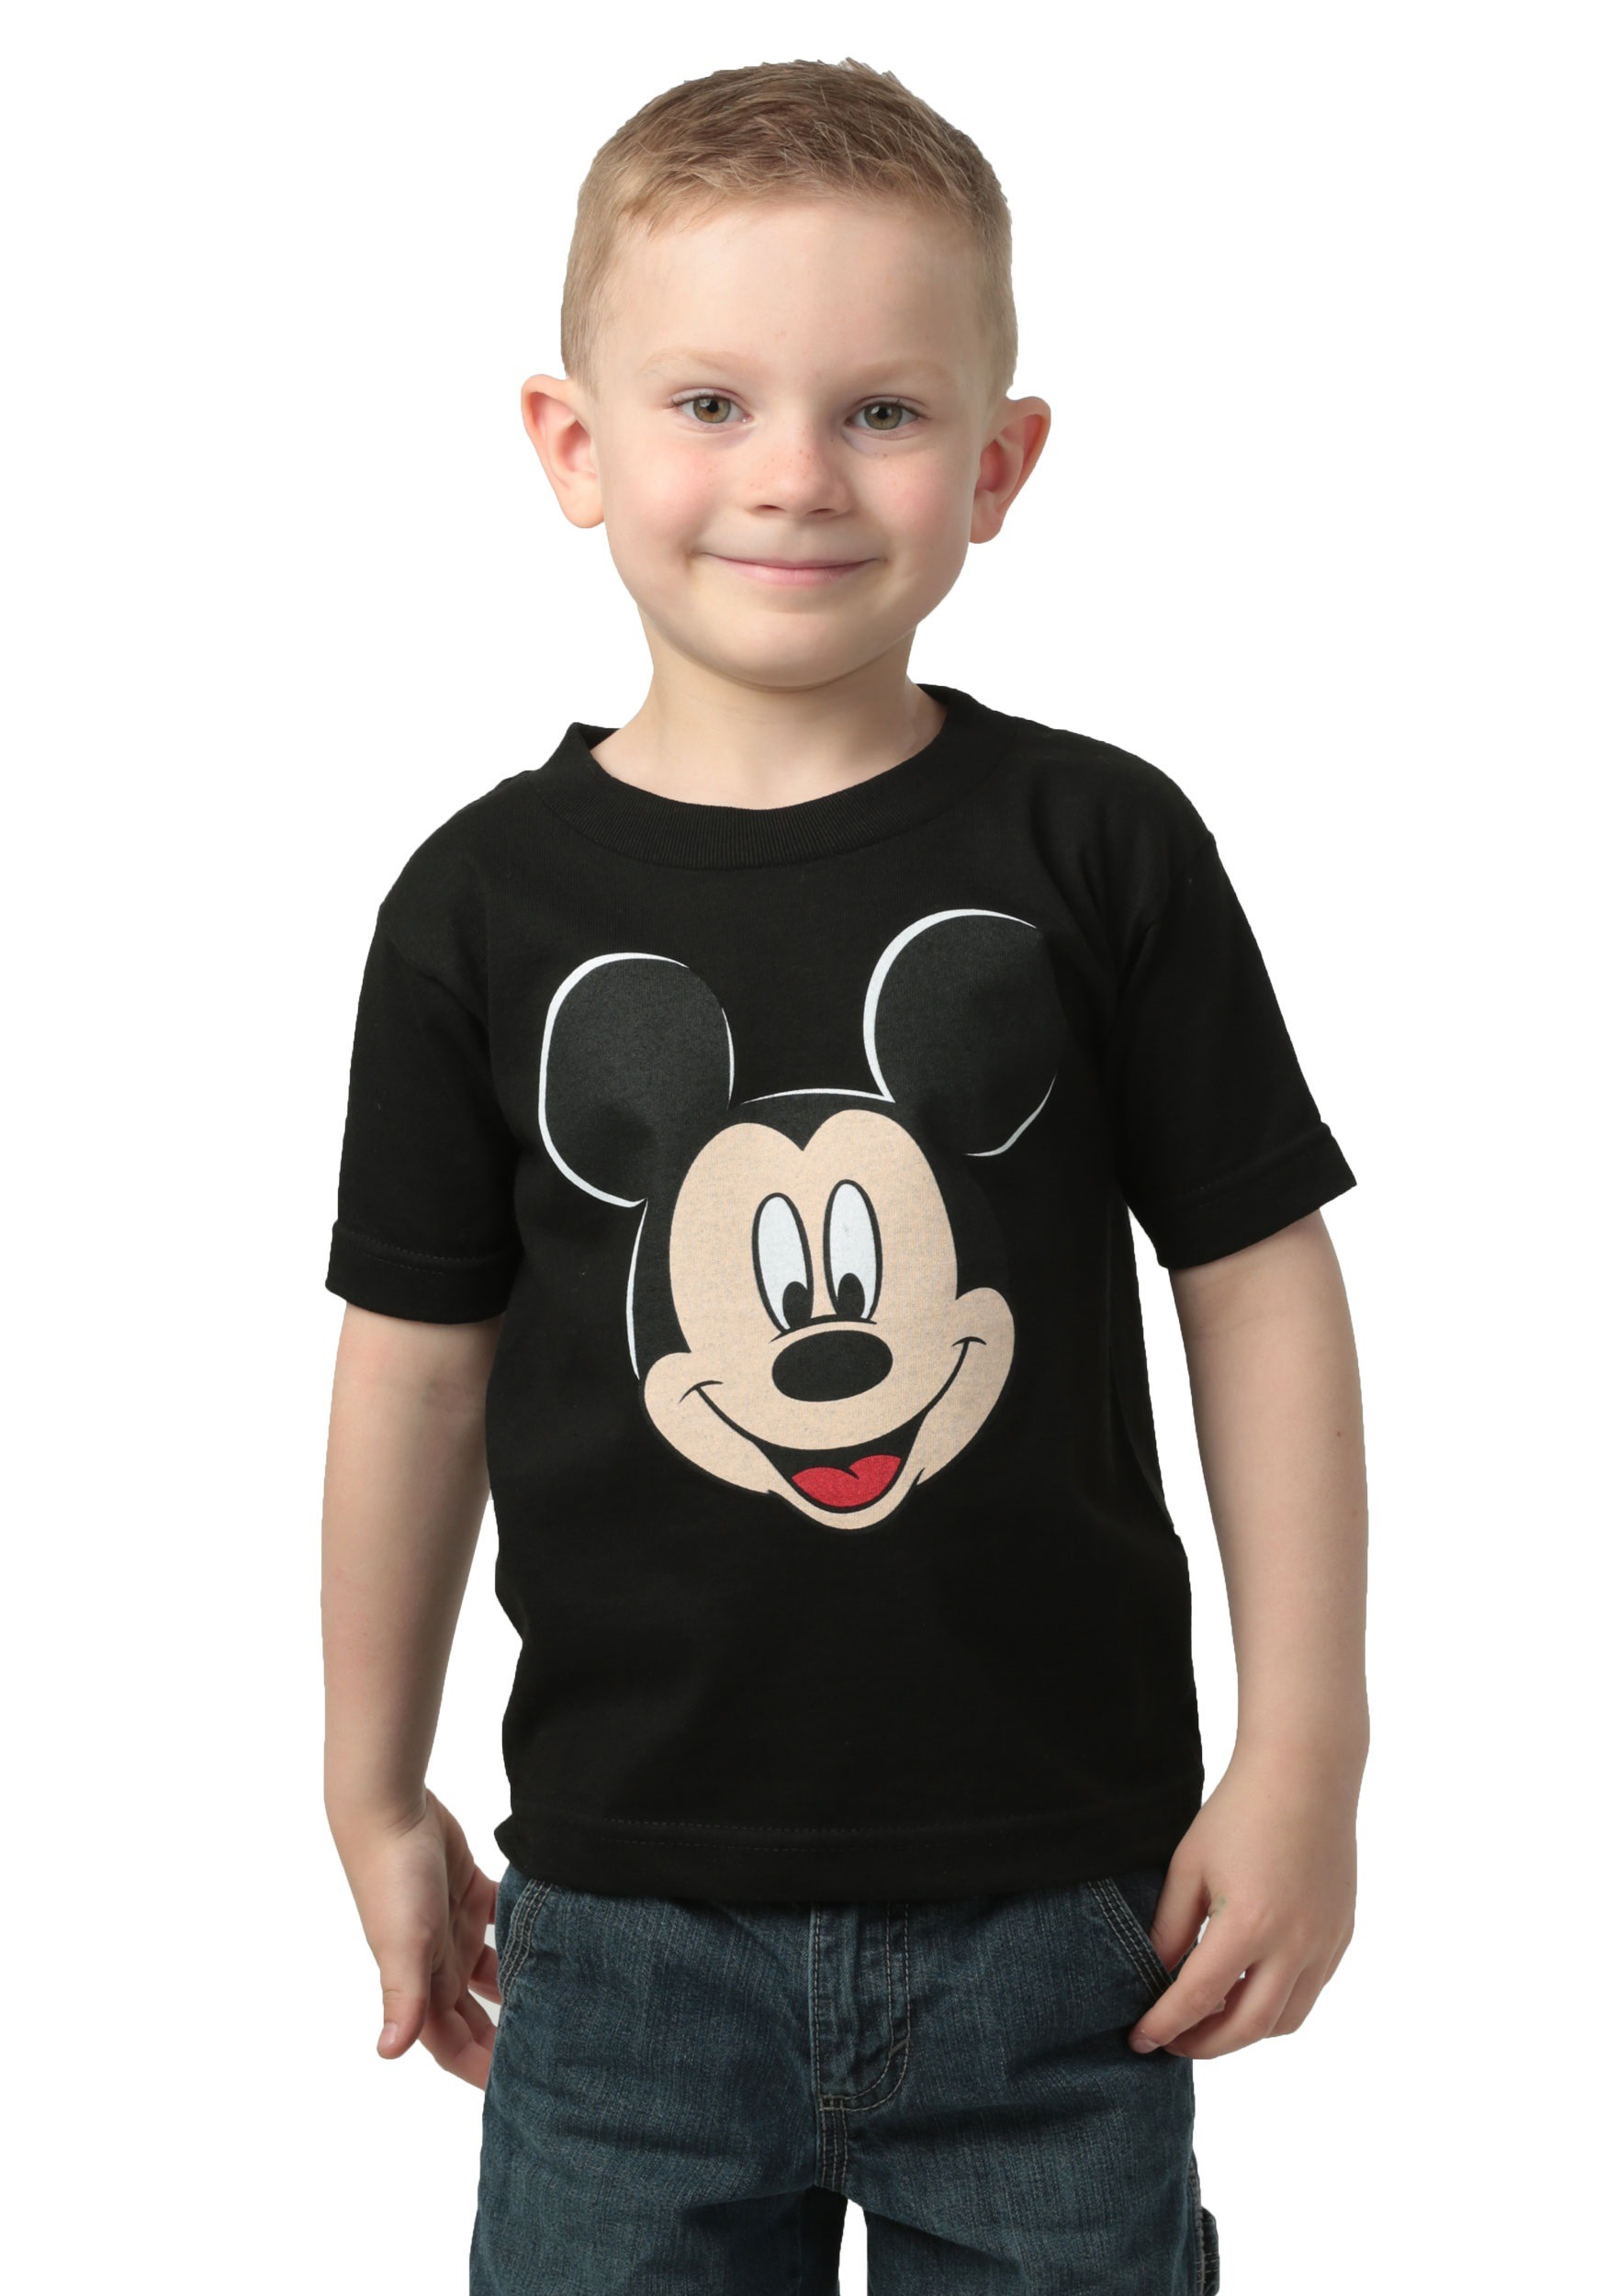 Find great deals on Boys Button-Down Shirts Kids Tops at Kohl's today! Sponsored Links Outside companies pay to advertise via these links when specific phrases and words are searched.